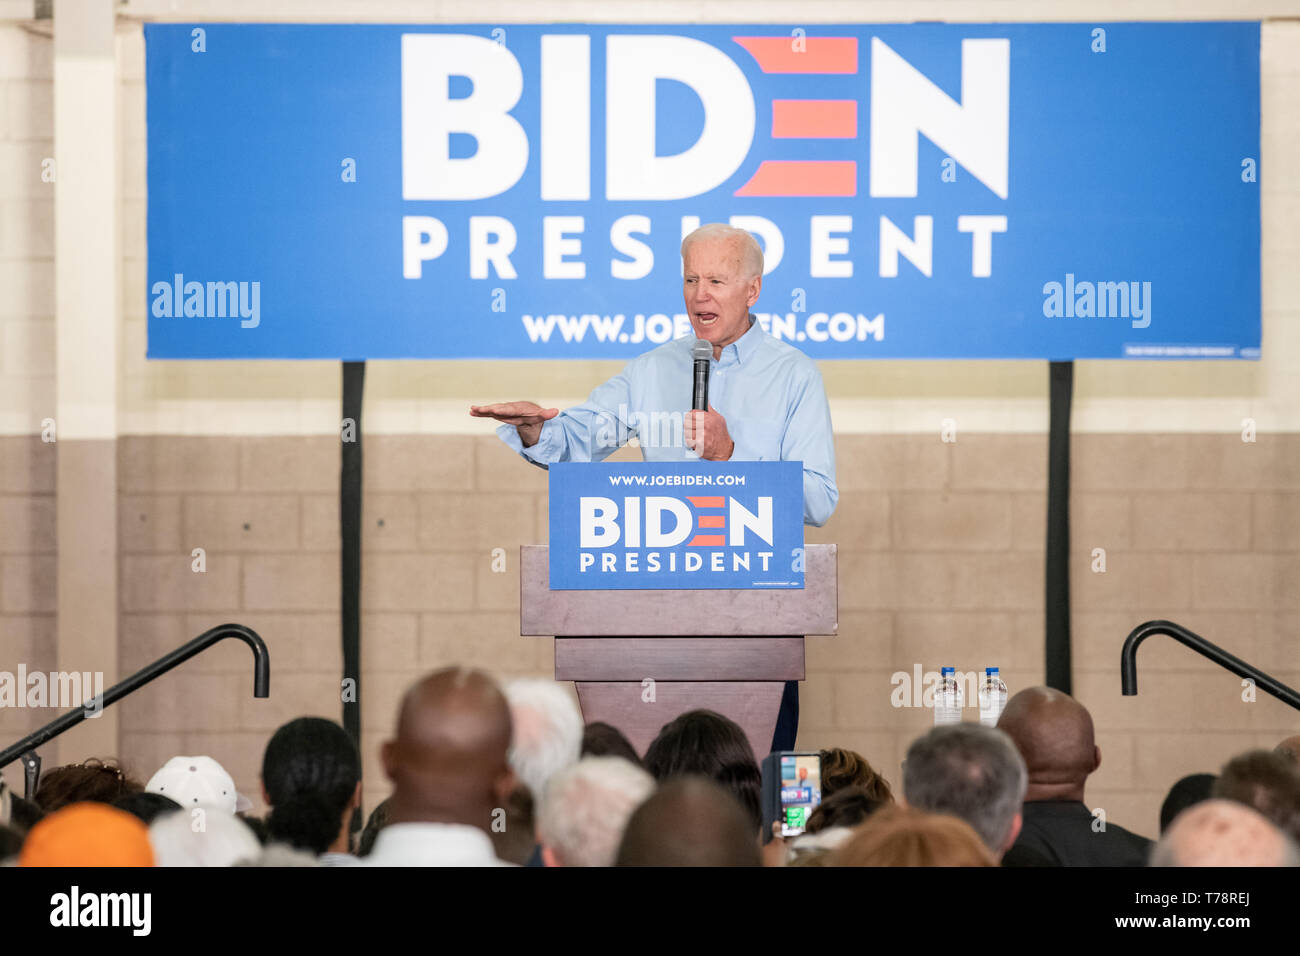 Columbia, South Carolina USA - May 4, 2019: 2020 presidential hopeful Joe Biden (D) speaks to potential supporters at a campaign stop in Columbia. Stock Photo